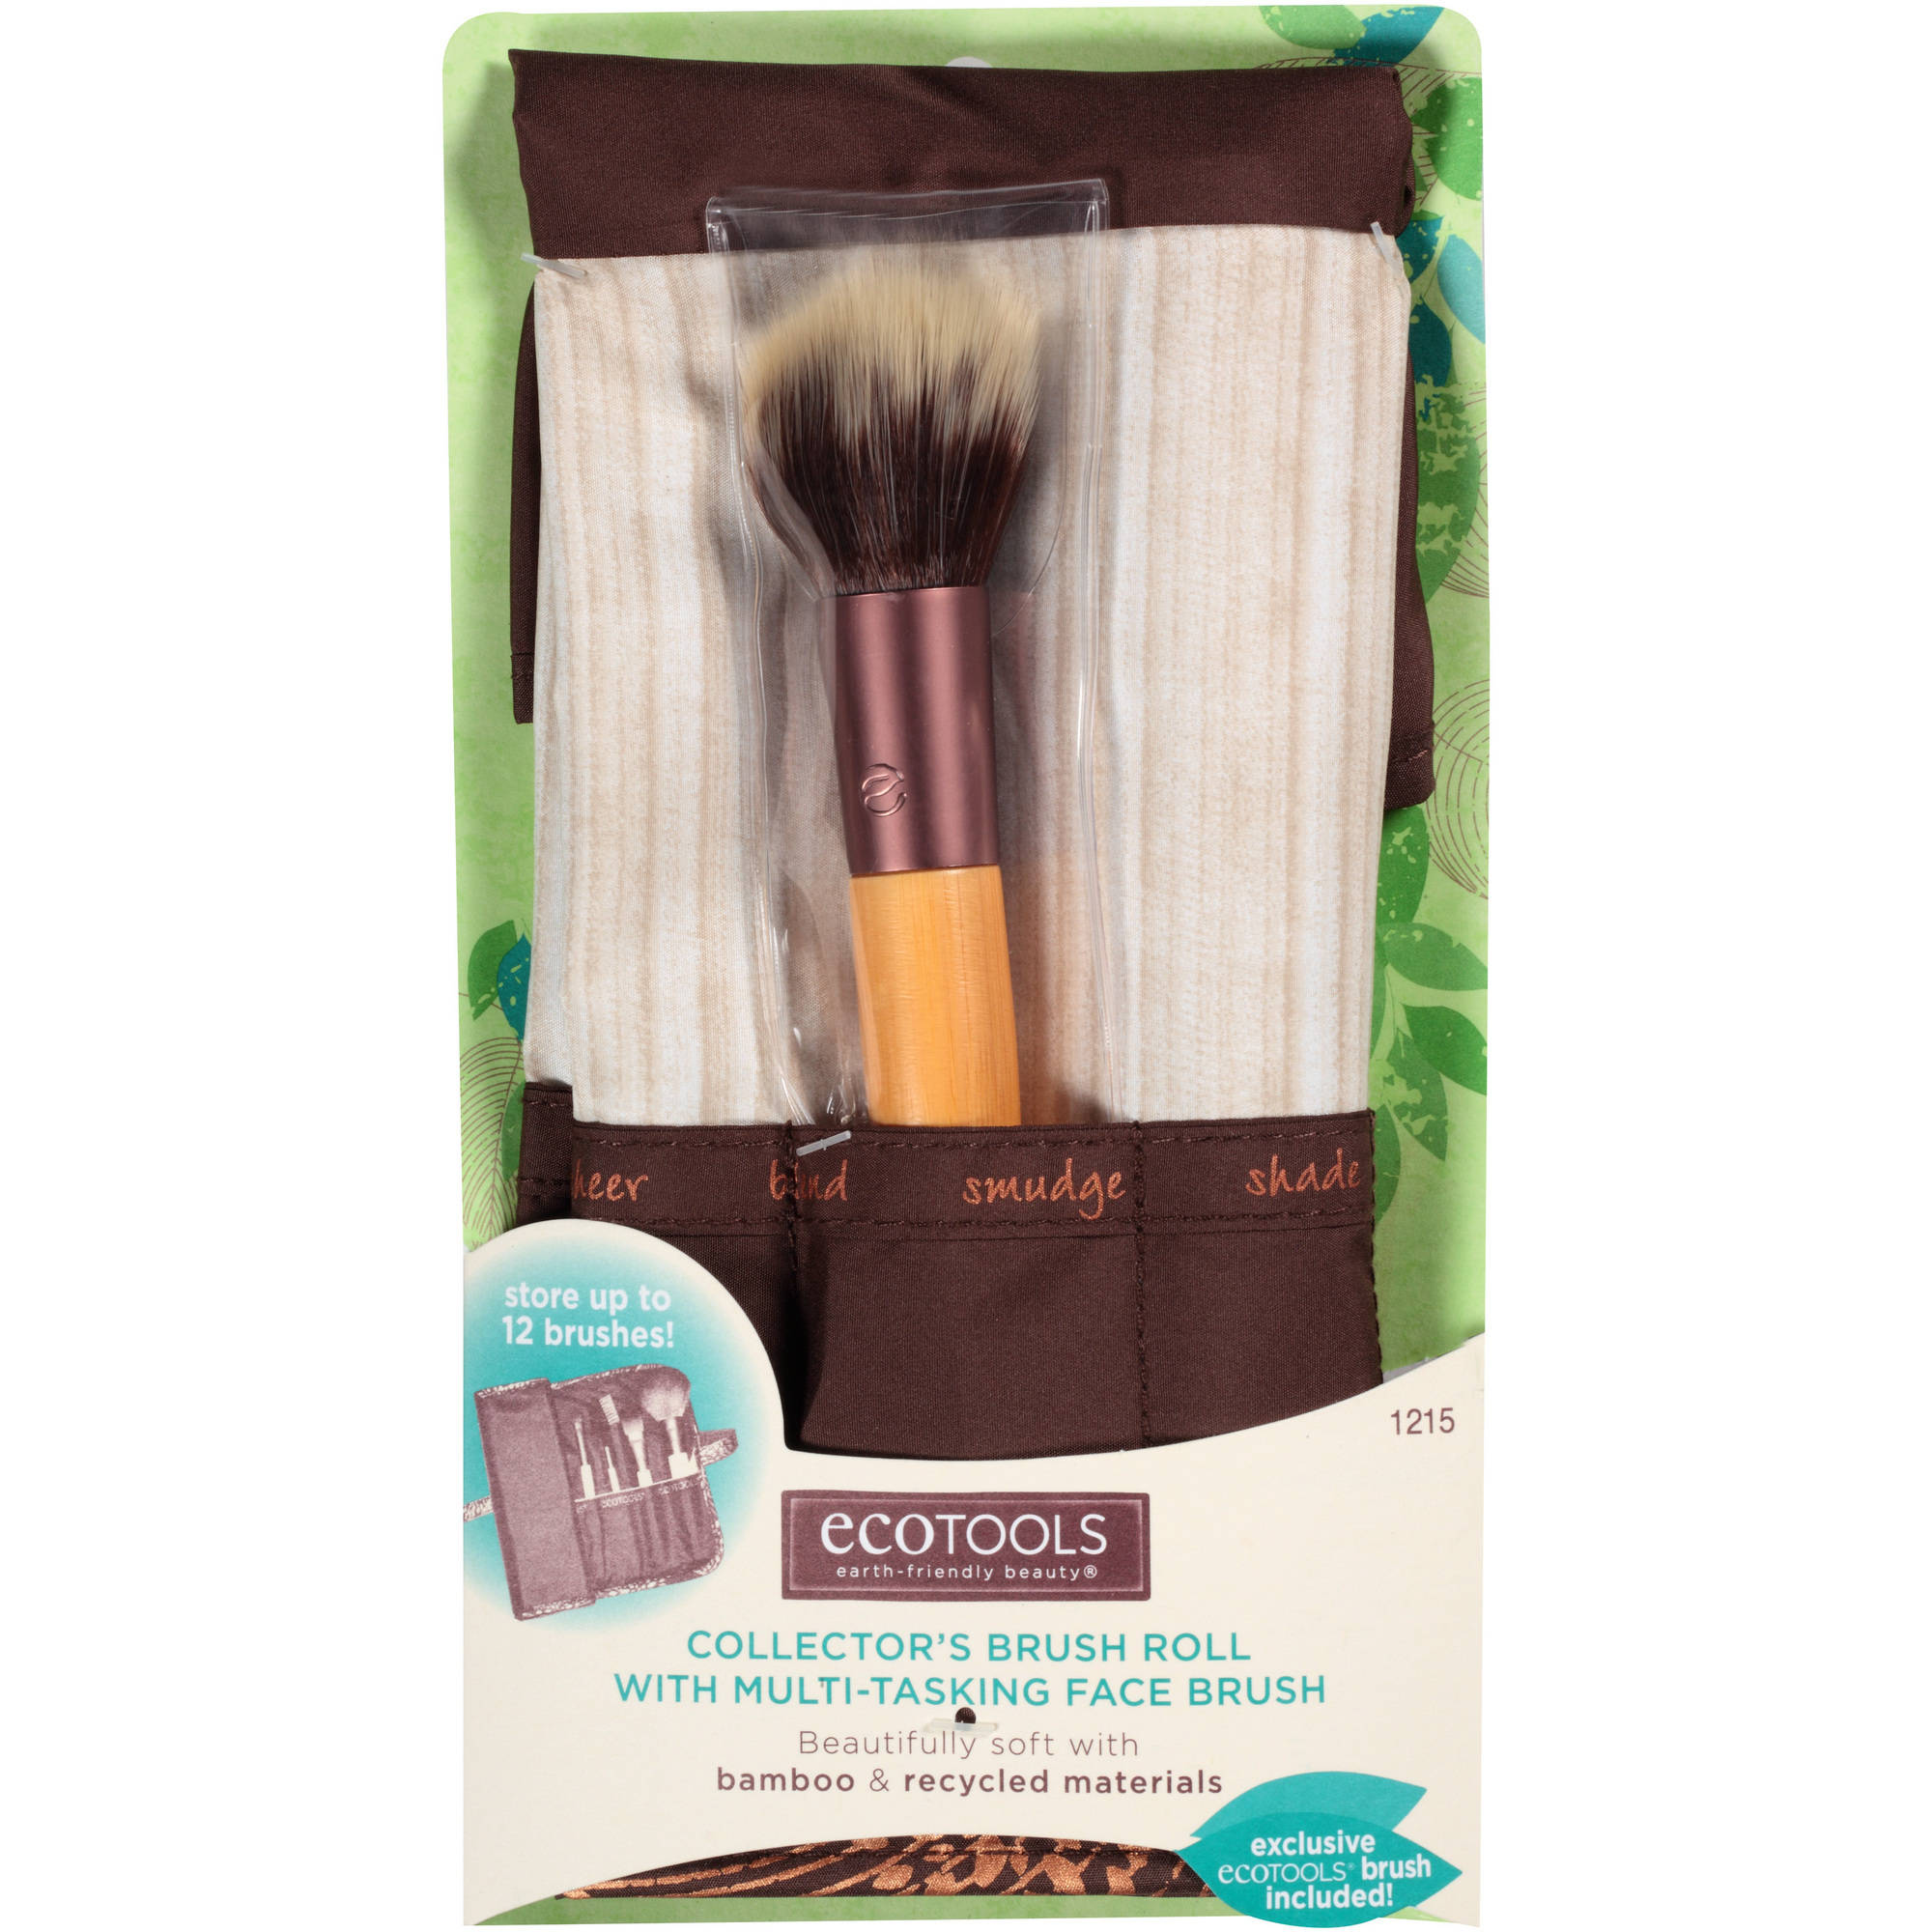 Ecotools Collector's Brush Roll with Multi-Tasking Face Brush, 2 pc